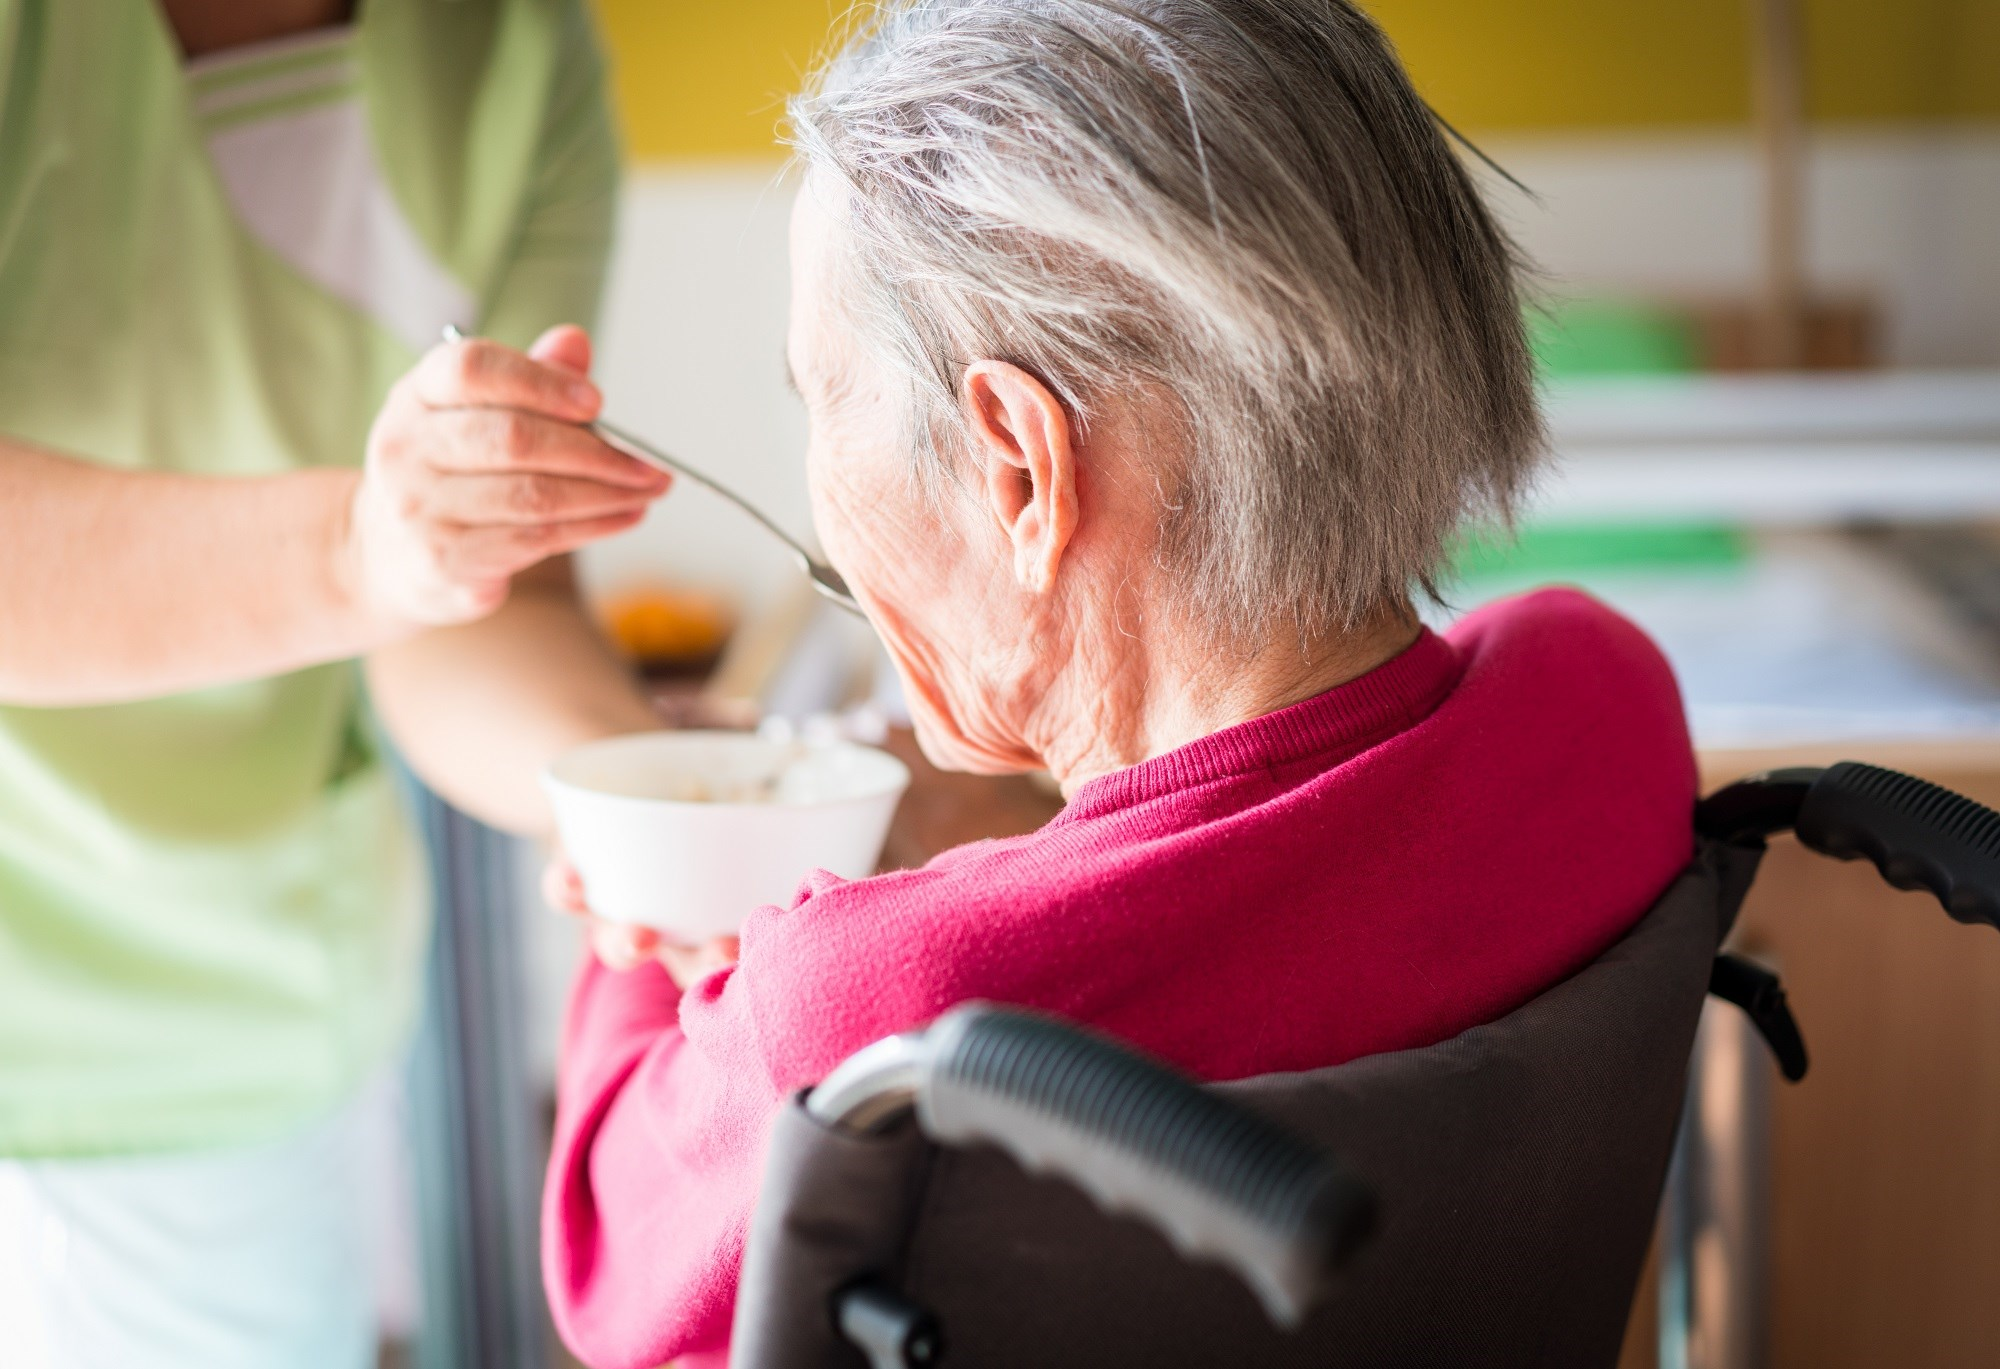 Physical frailty may exacerbate the behavioral and psychological symptoms of dementia (BSPD) in patients with Alzheimer disease, and also increase caregiver burden.